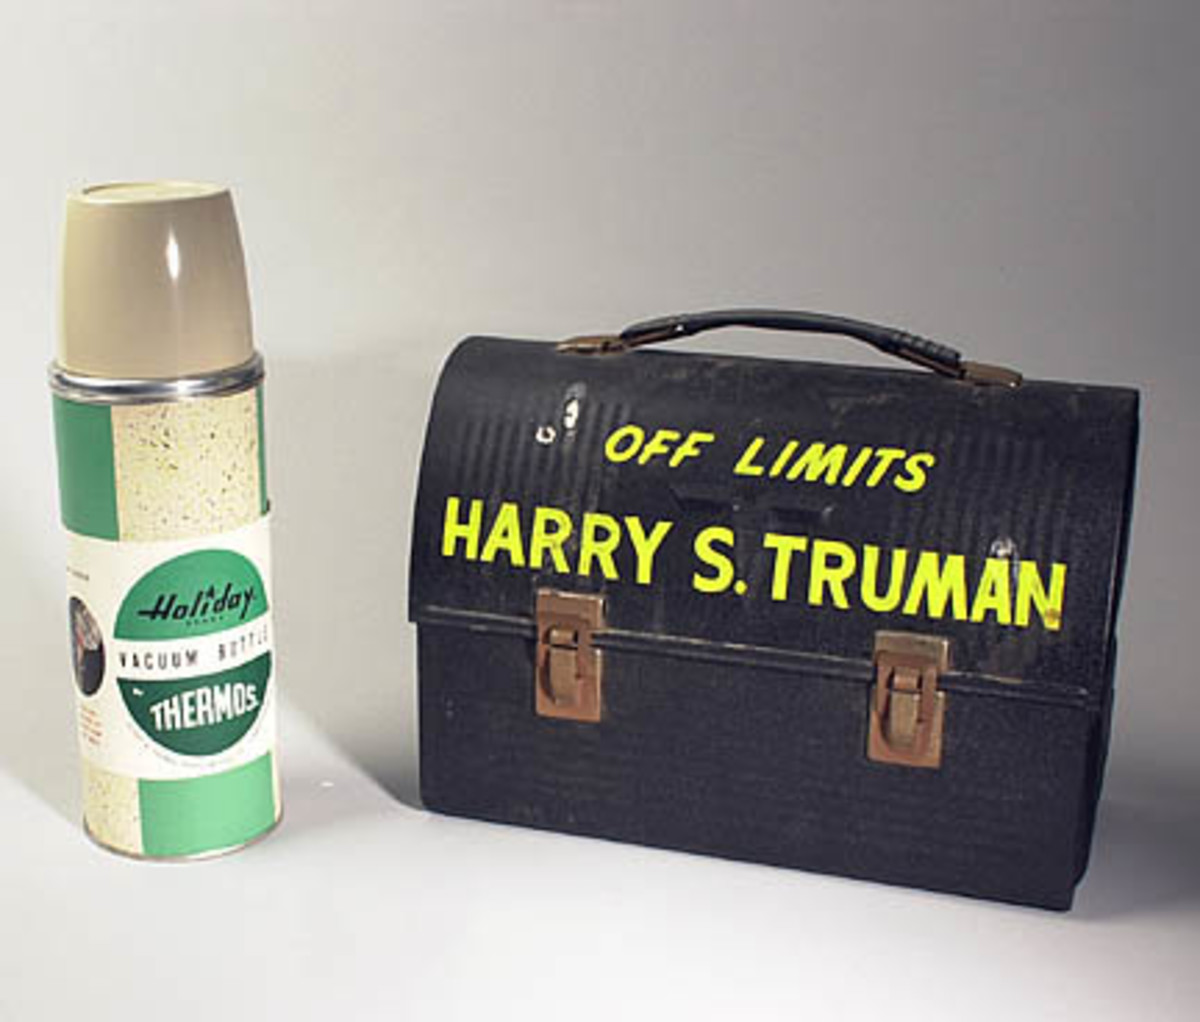 The lunch box and vacuum bottle owned by Harry S. Truman.